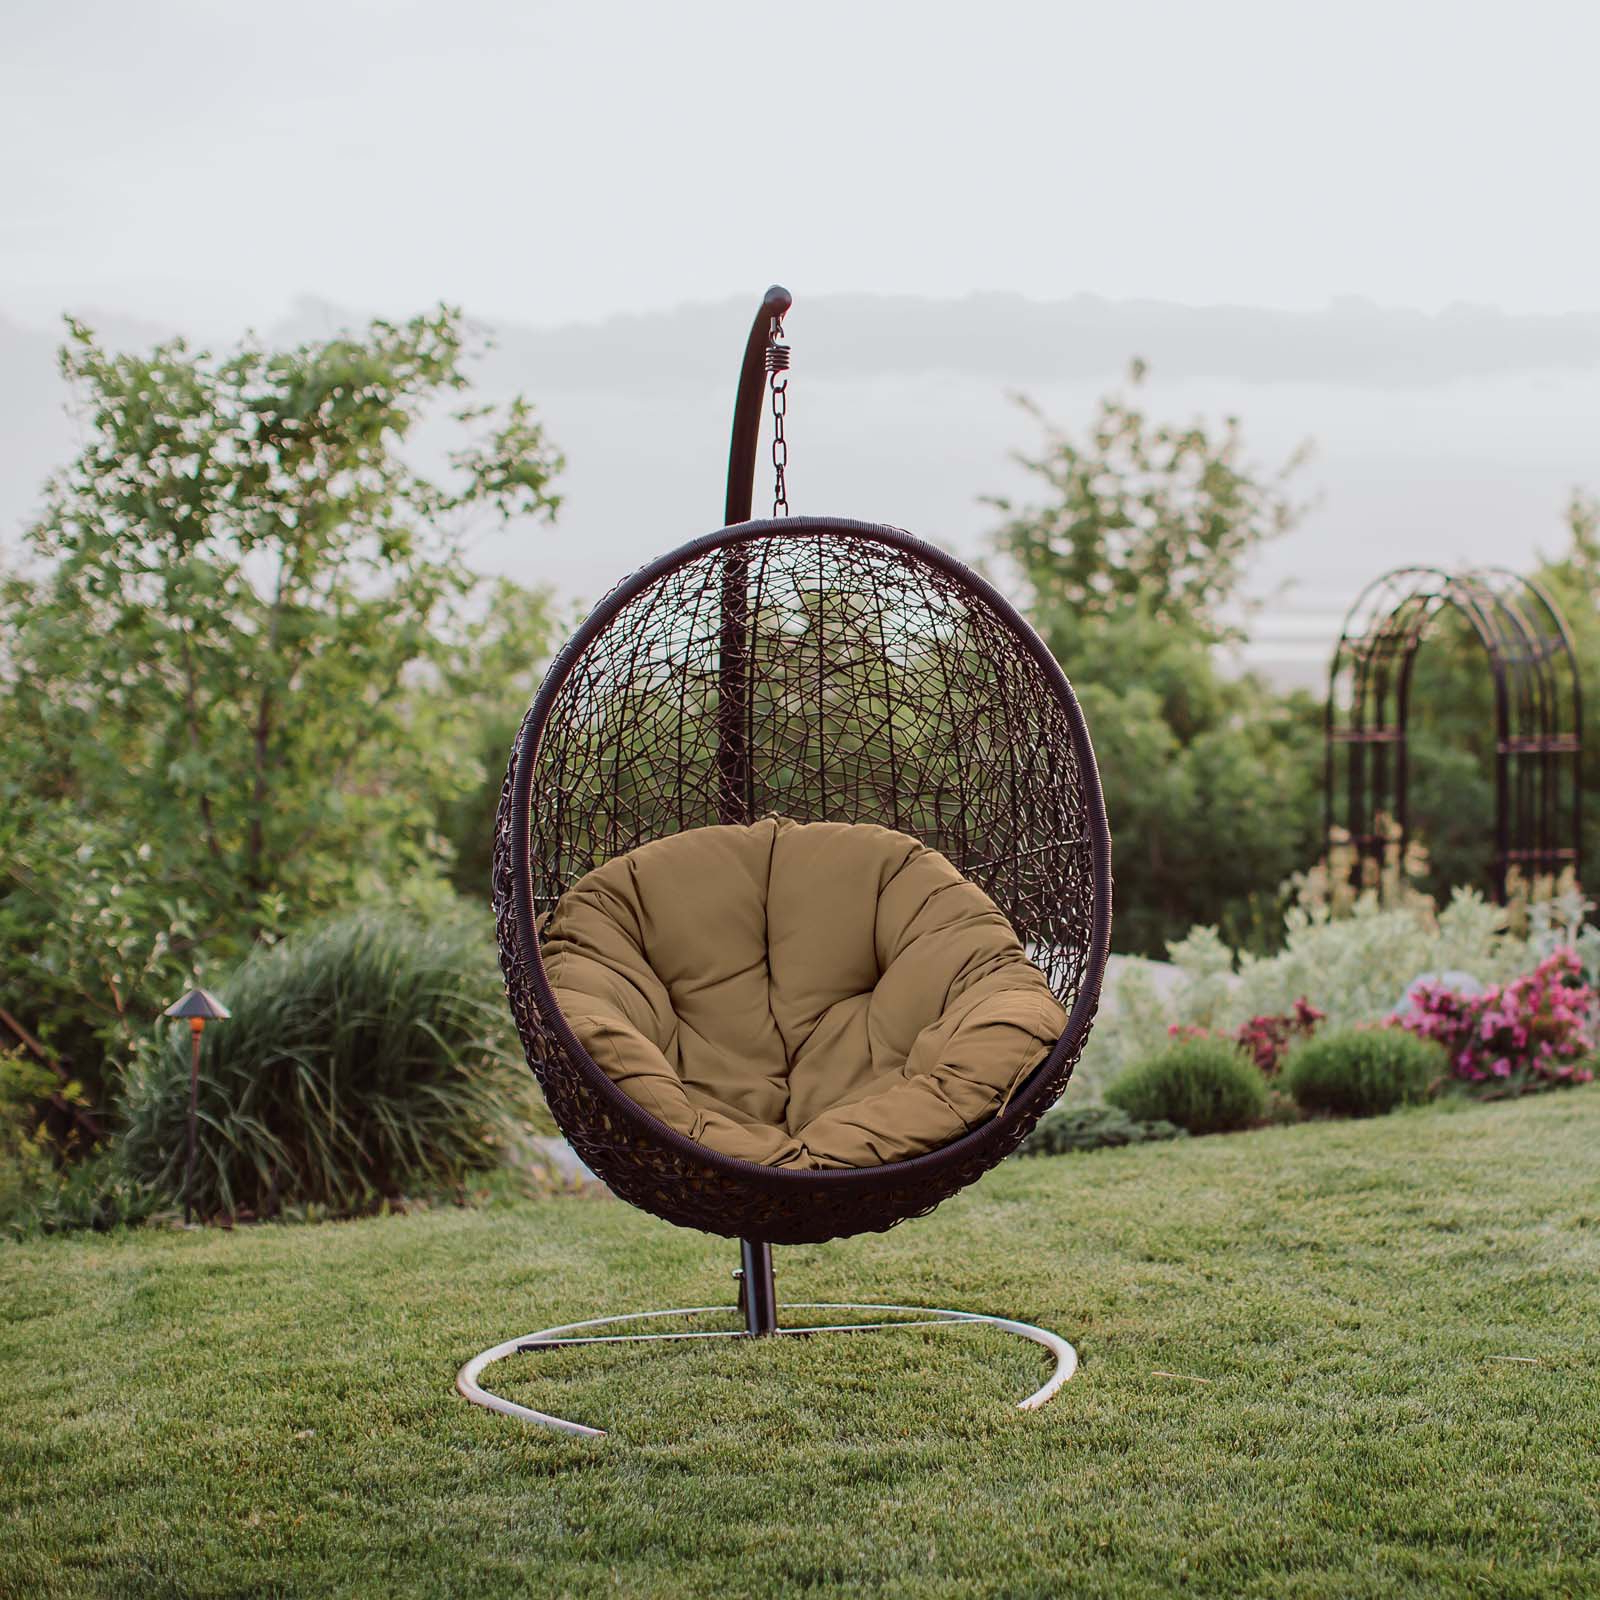 2019 Appealing Outdoor Patio Swing Chair Colors Black Hammock Intended For Wicker Glider Outdoor Porch Swings With Stand (View 2 of 30)